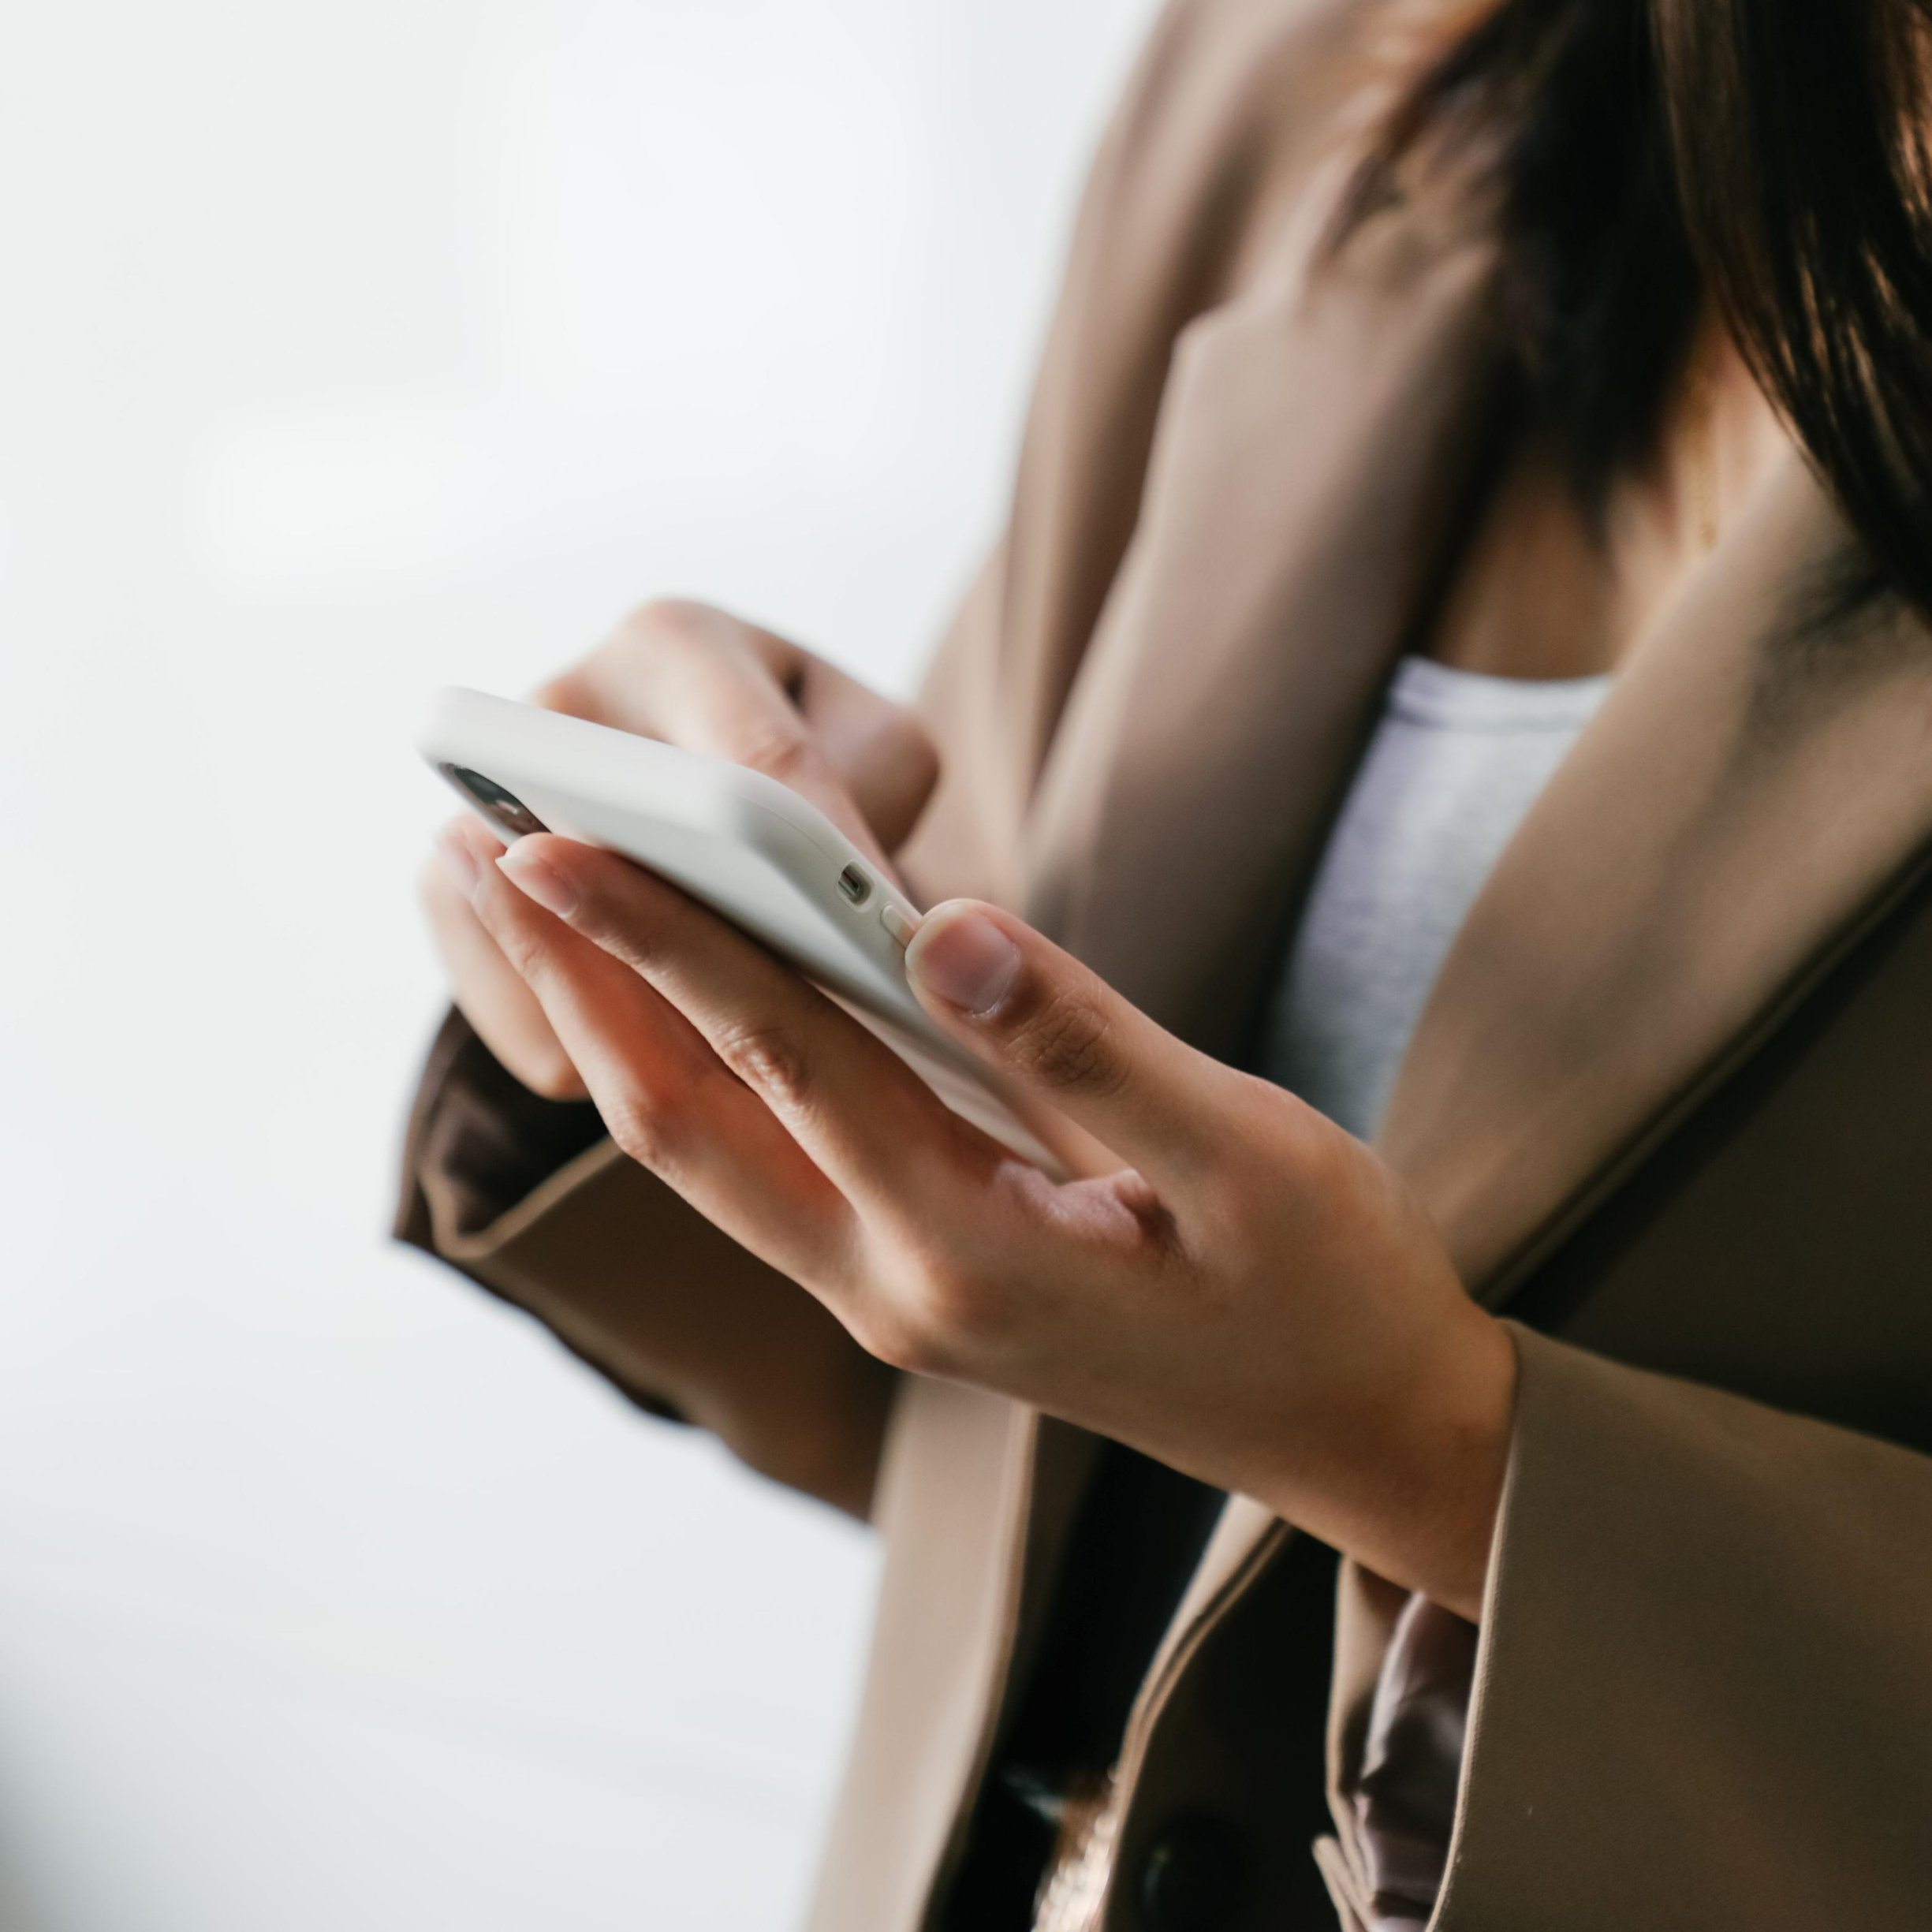 """Woman in brown blazer typing on white iphone with brown hair, represents """"Assess Your Unique Selling Proposition"""" program"""